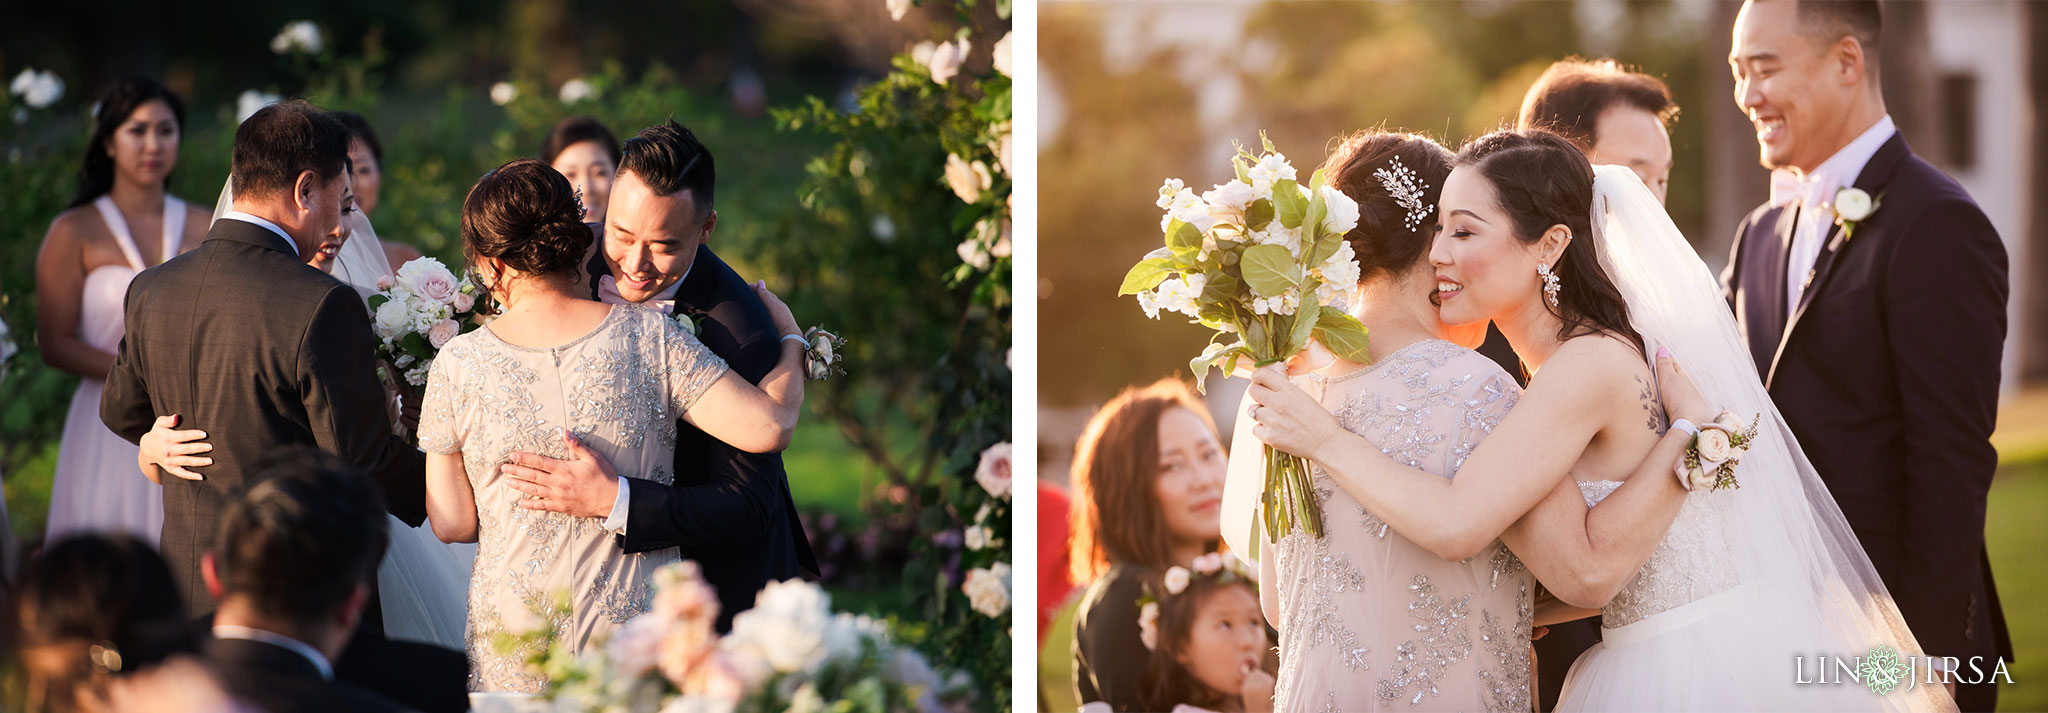 24 Los Coyotes Country Club Buena Park Wedding Photography